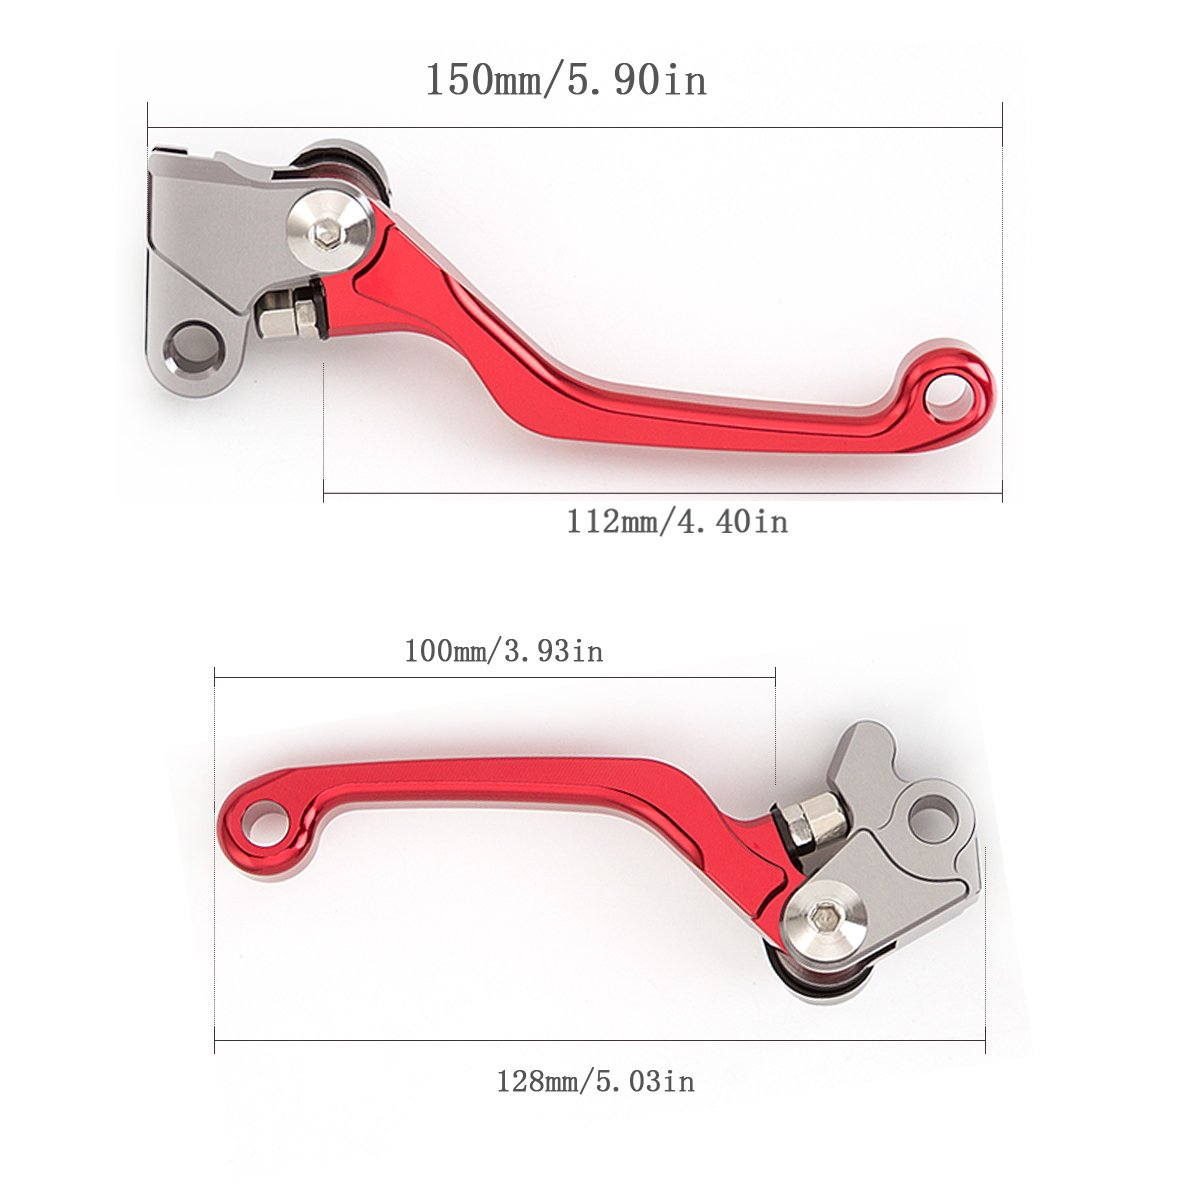 Red Motorcycle Brake Clutch Levers CNC Aluminum Billet Foldable Pivot Off Road Dirt Pit Bike for crf230f crf 230 f 230cc crf150f crf 150 f 150cc 2003-2019 crf250f crf 250 f 2019-2020